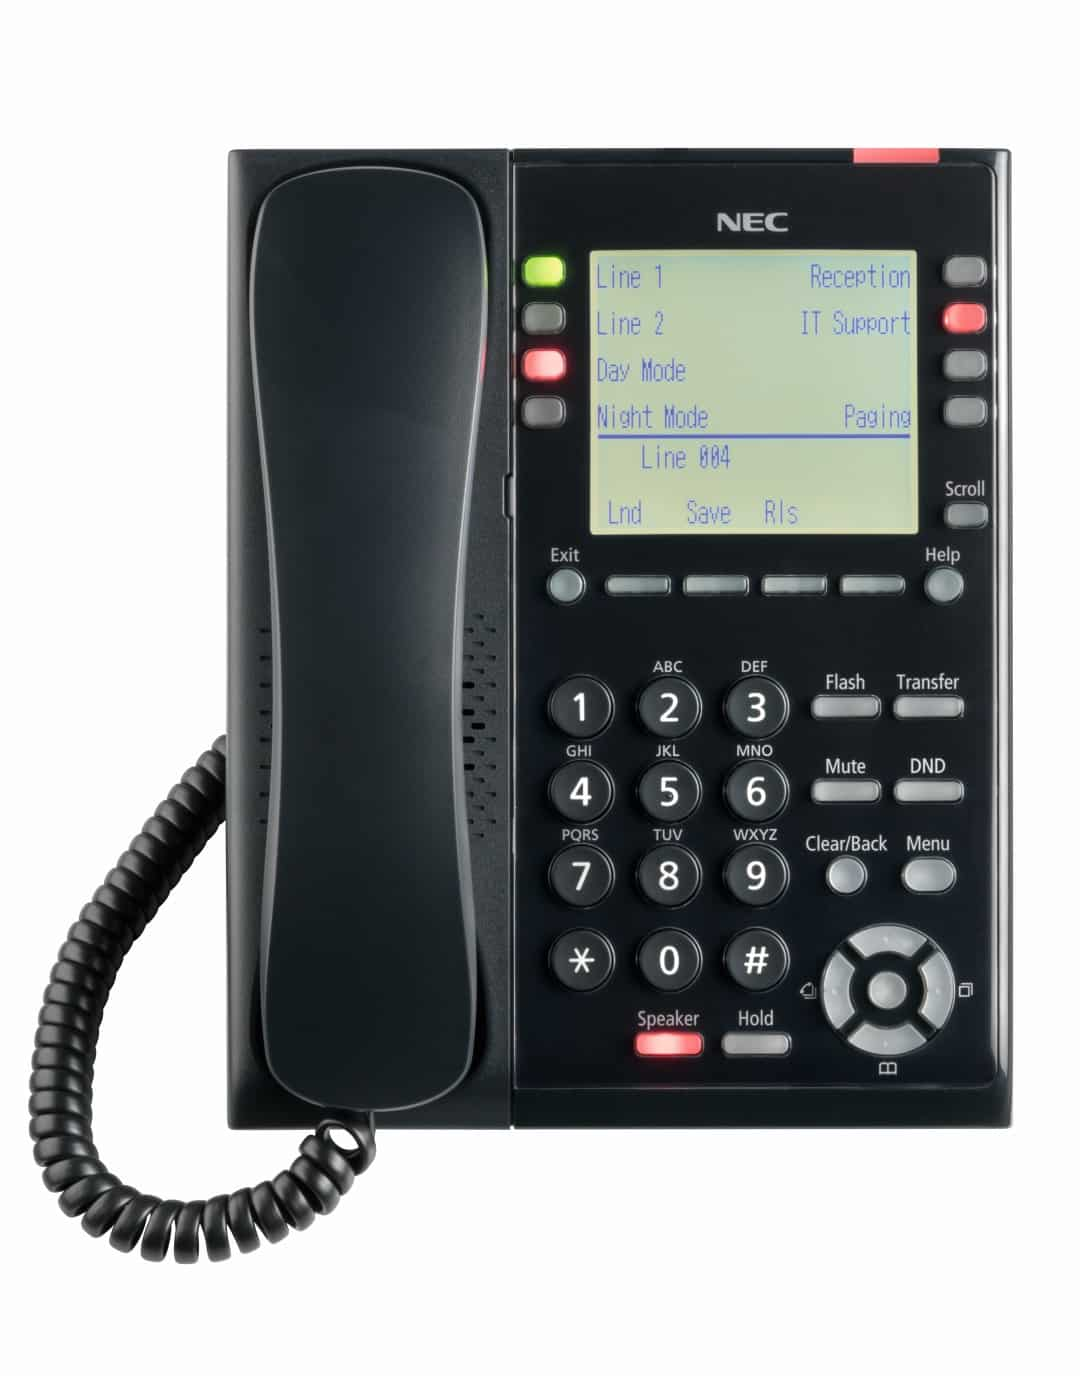 NEC SL2100 IP Self Labeling Telephone front view - NEC SL2100